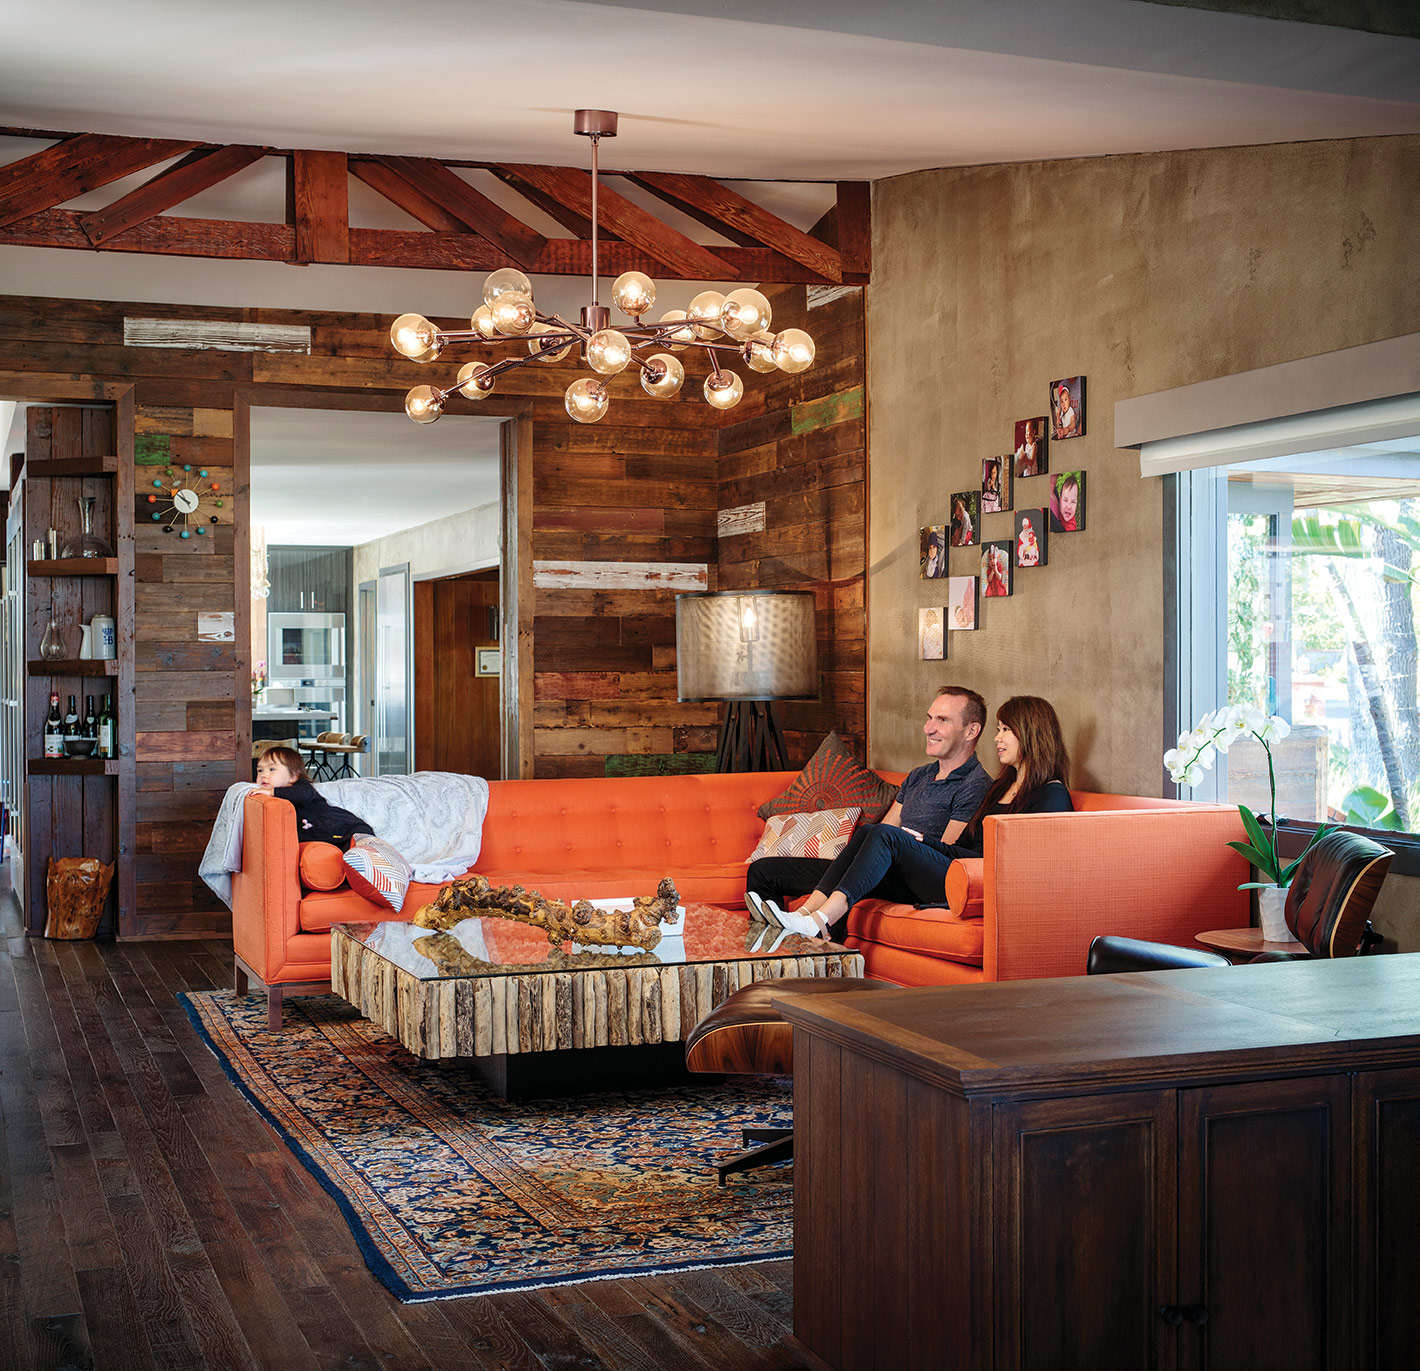 mission hills rustic industrial redesign family room orange couch san diego